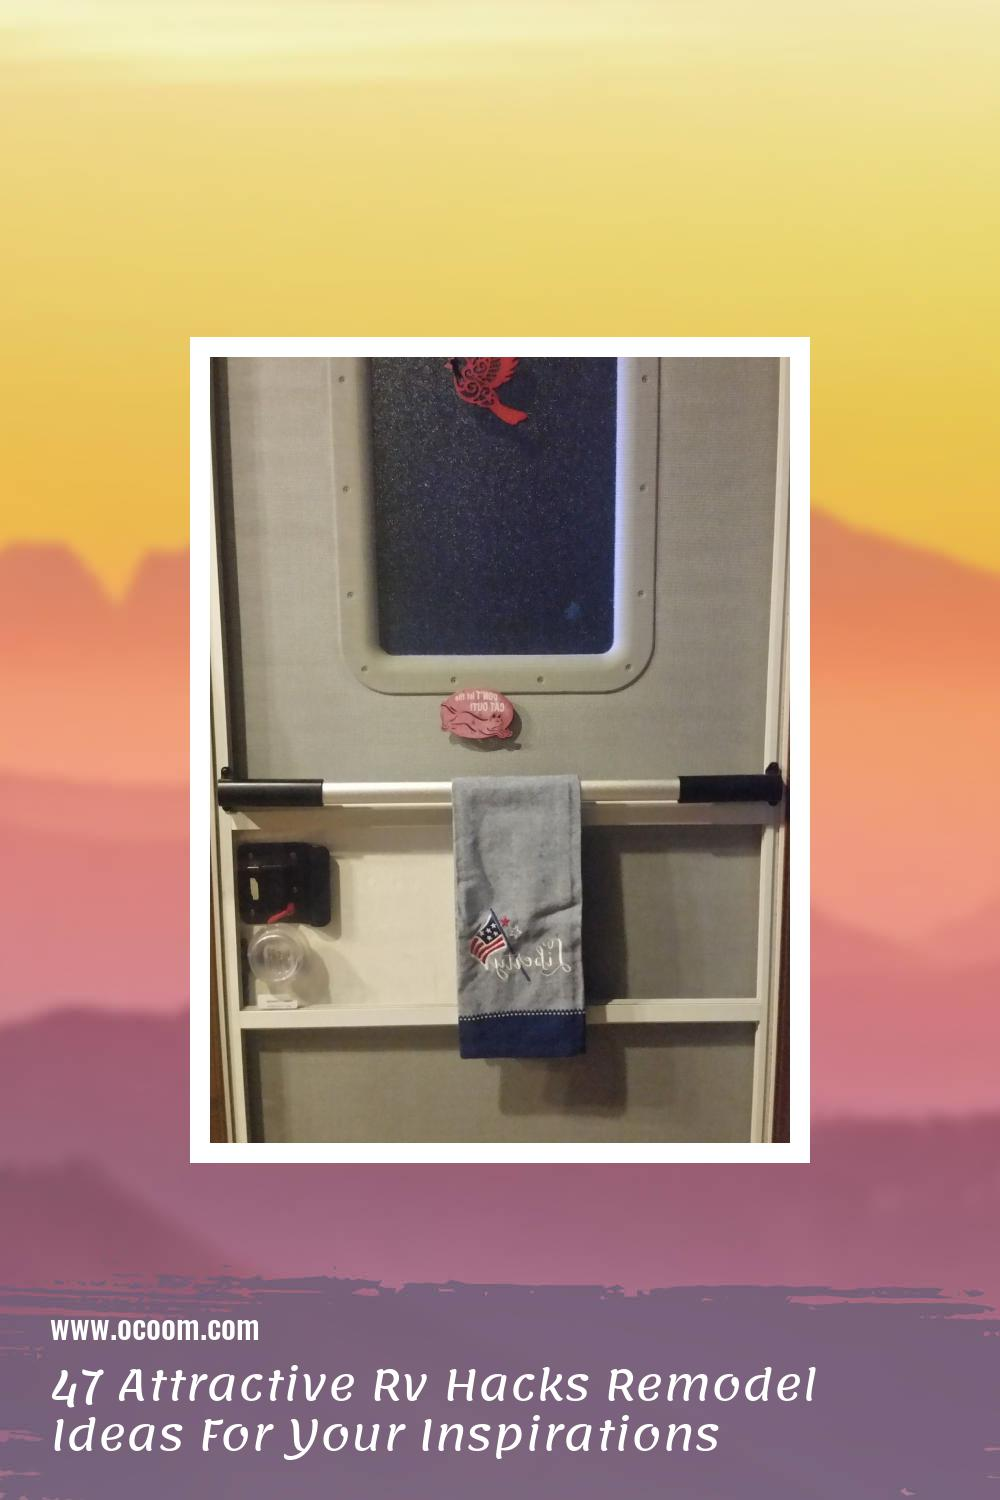 47 Attractive Rv Hacks Remodel Ideas For Your Inspirations 13